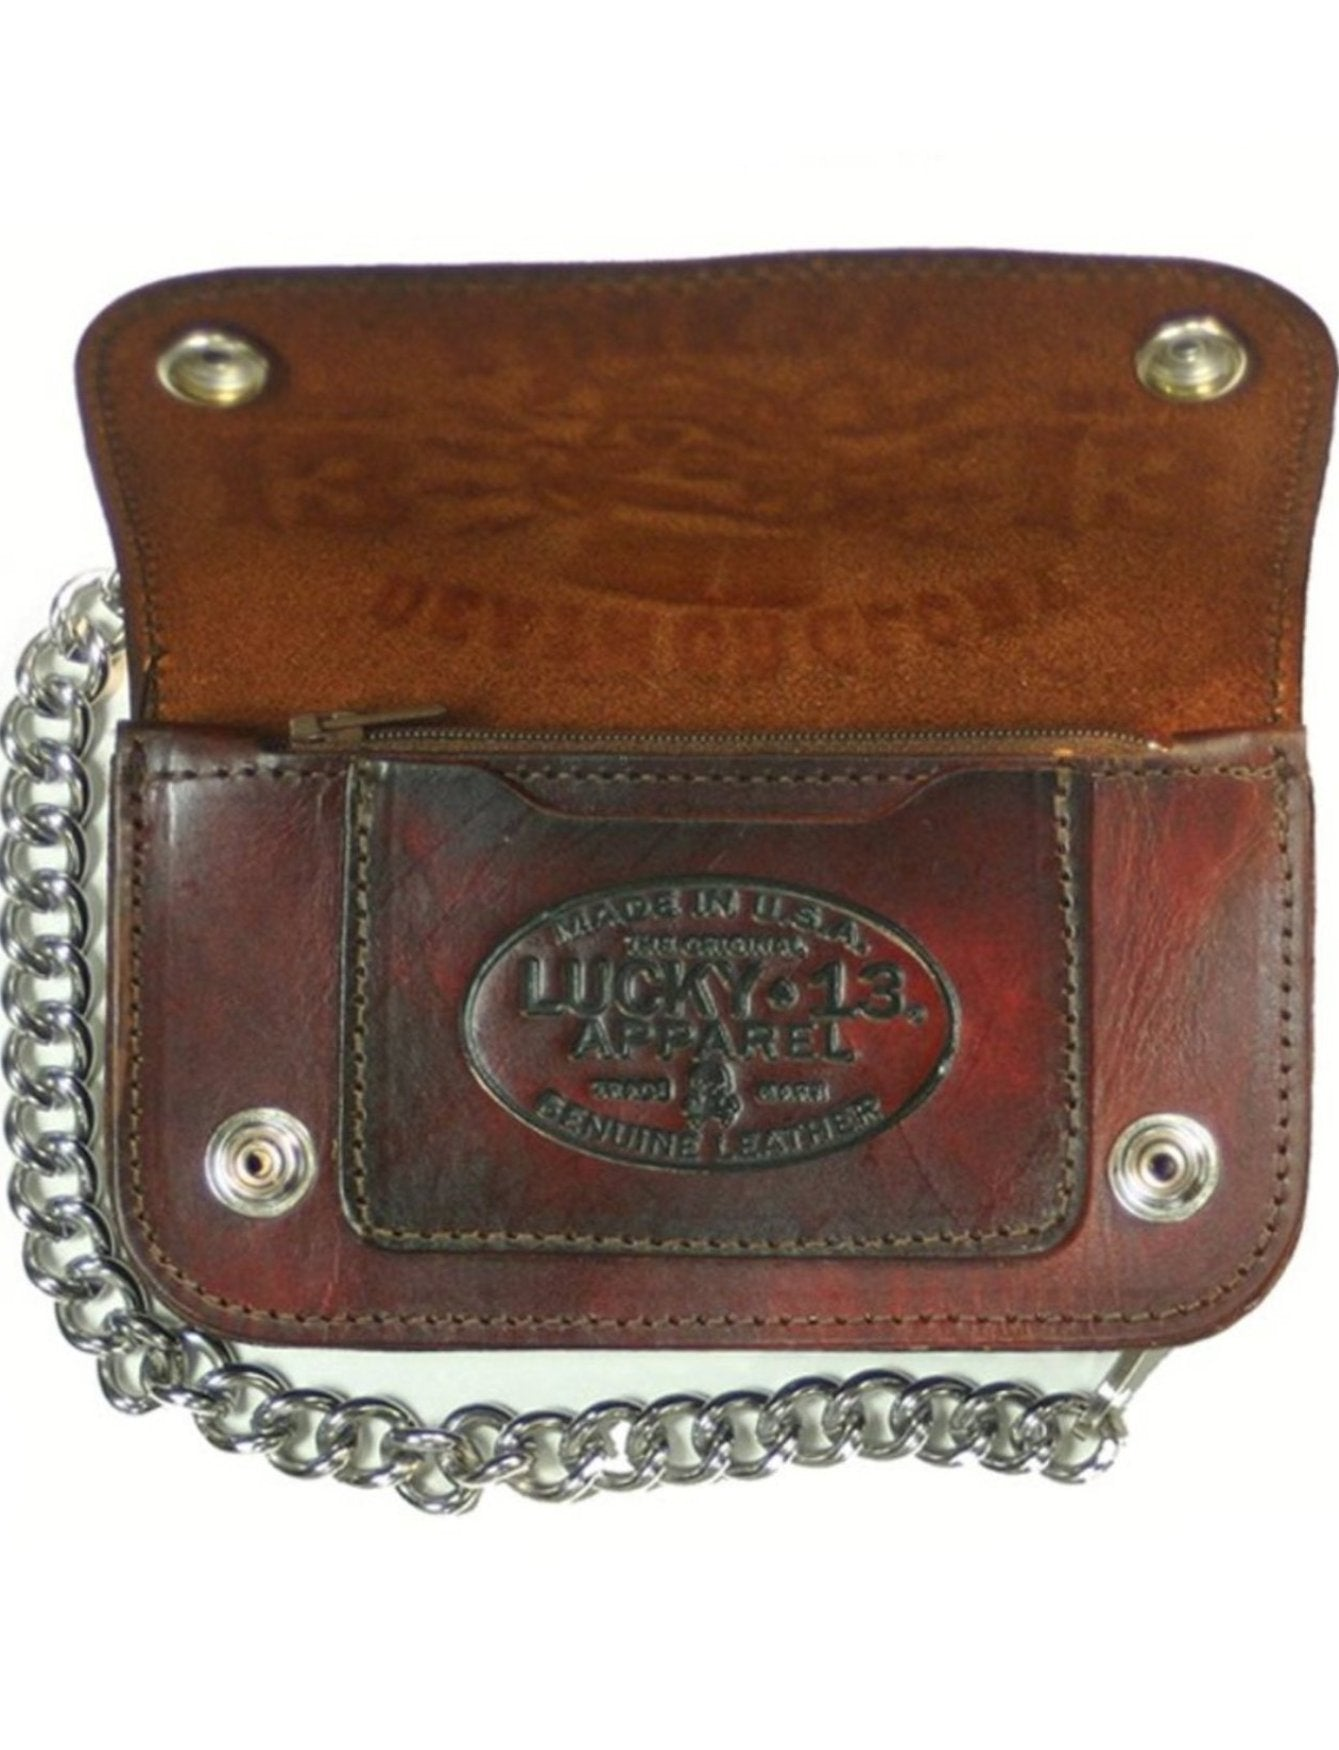 The DEATH OR GLORY Wallet - ANTIQUED BROWN